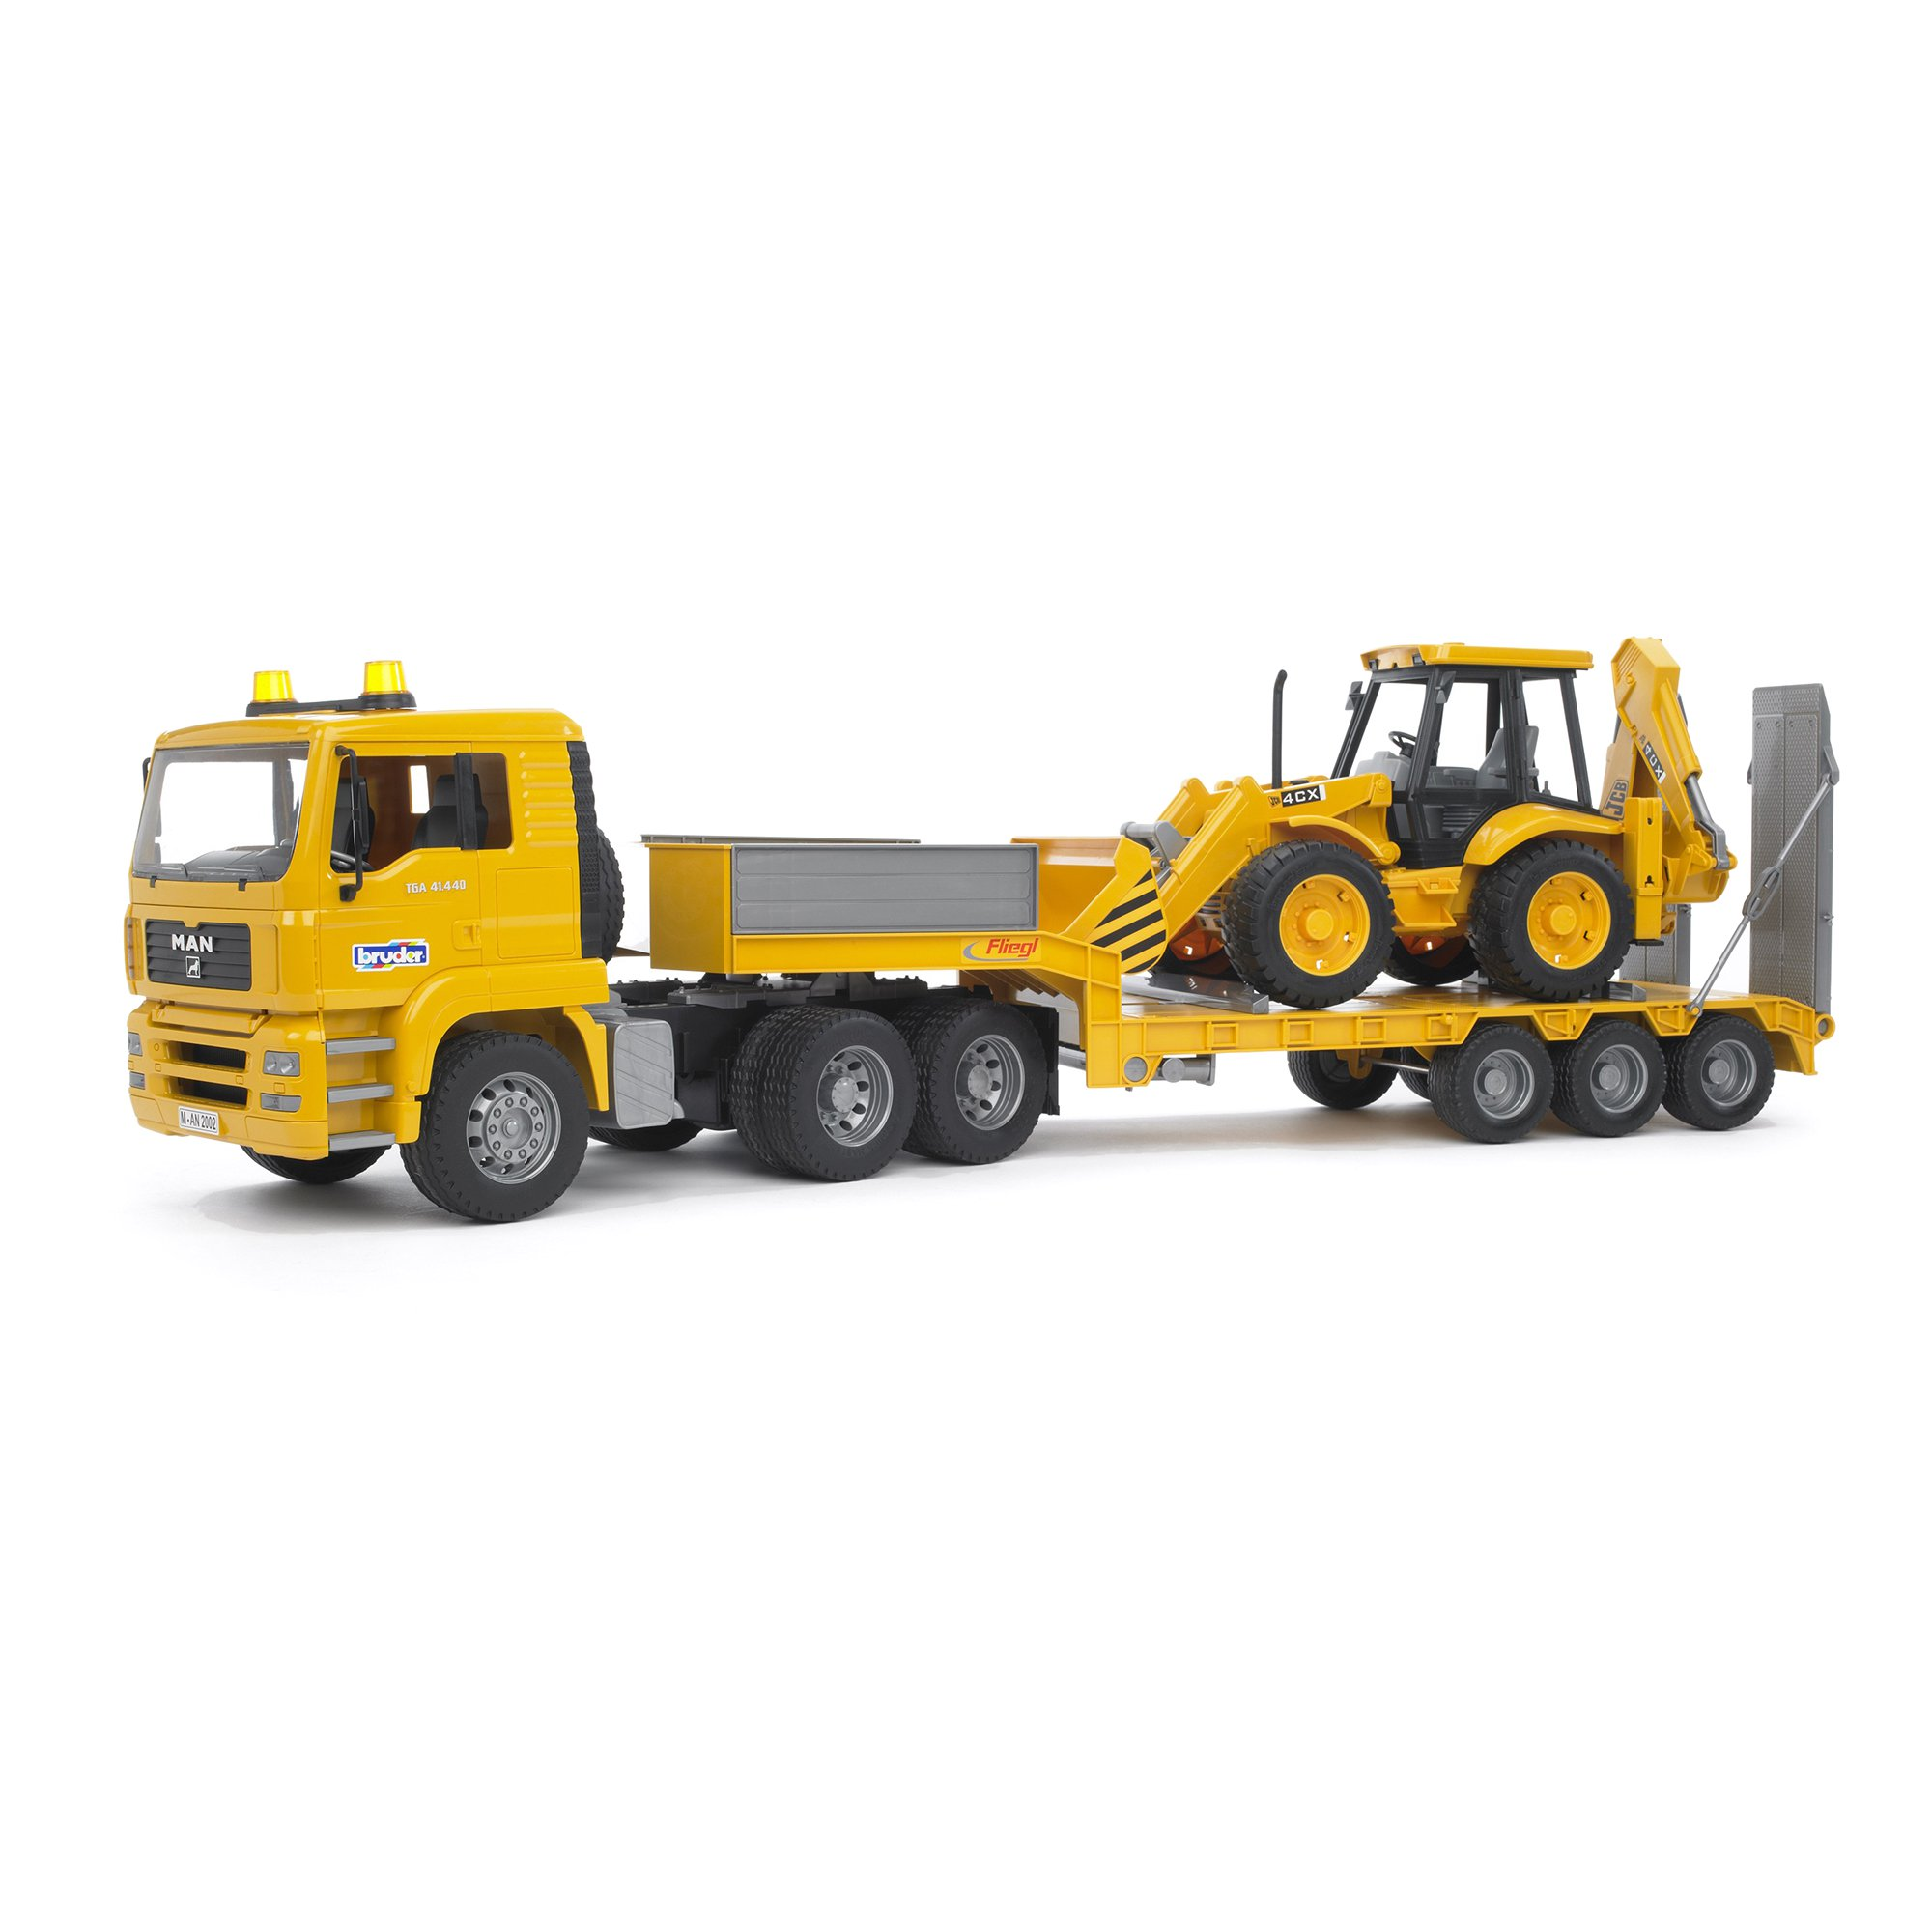 Bruder Toys MAN TGA Low Loader Truck with JCB Backhoe Loader on Trailer | 02776